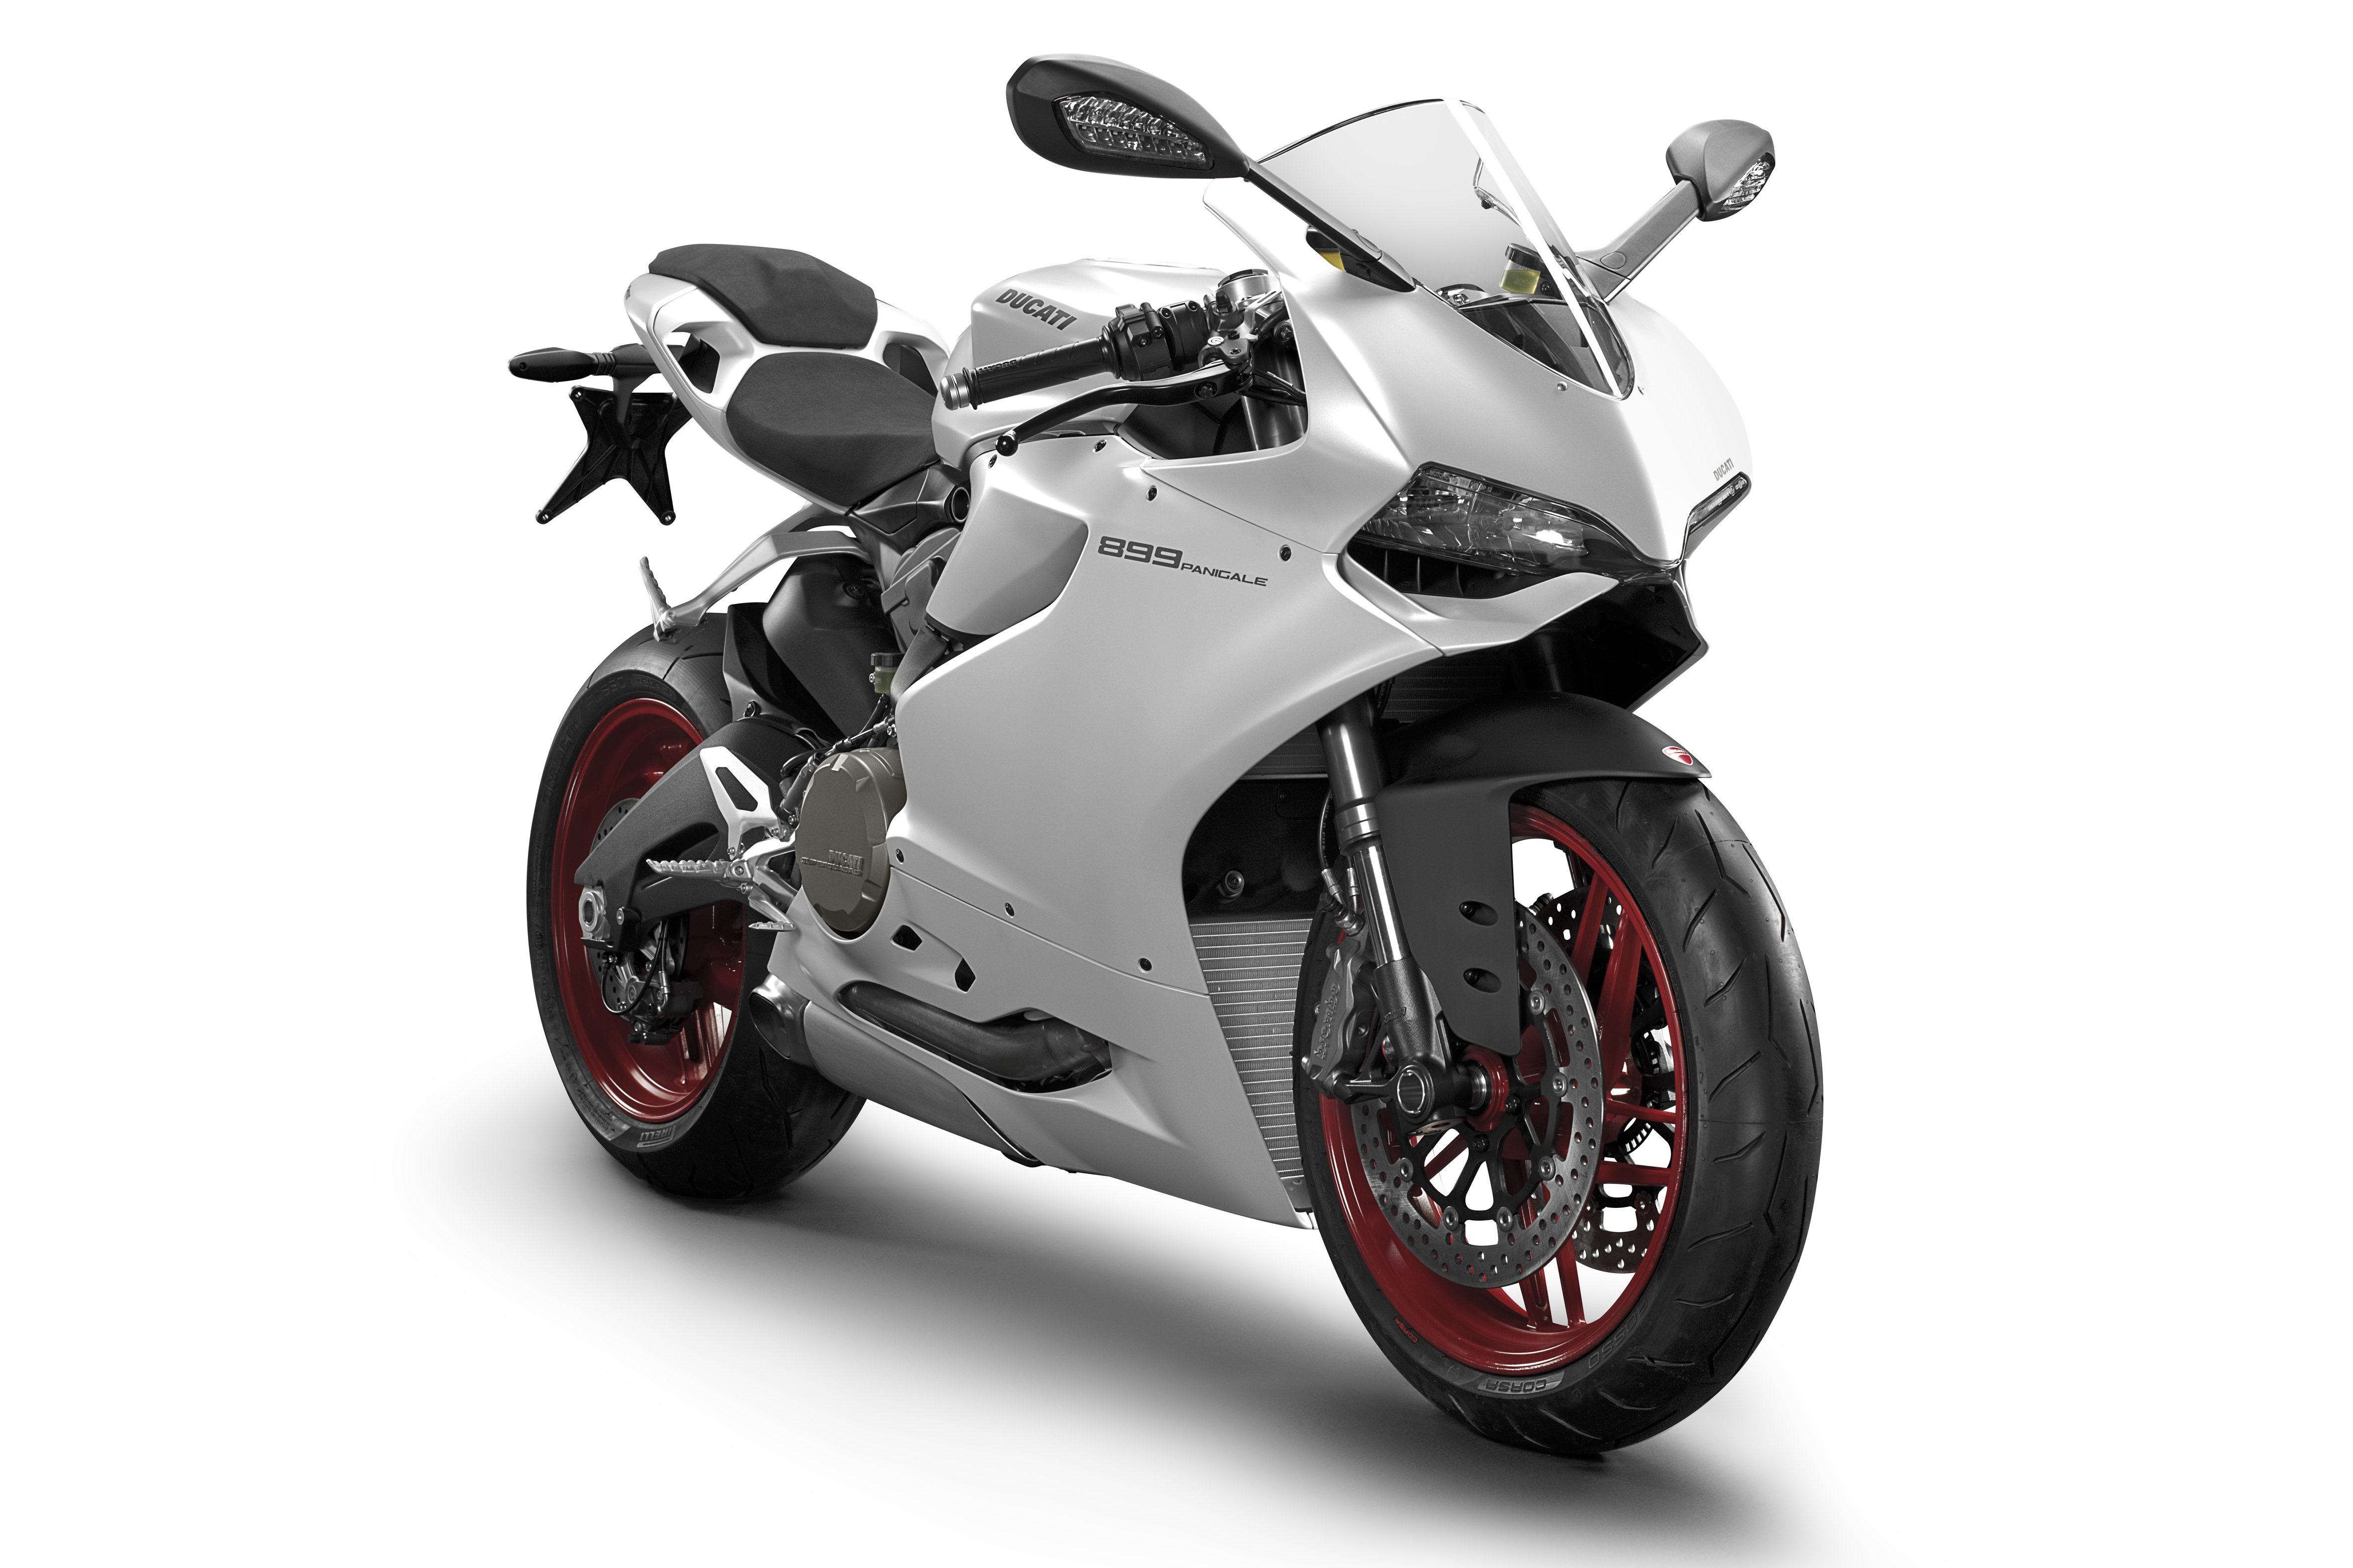 Ducati Superbike 899 Panigale 2014 wallpapers #13564